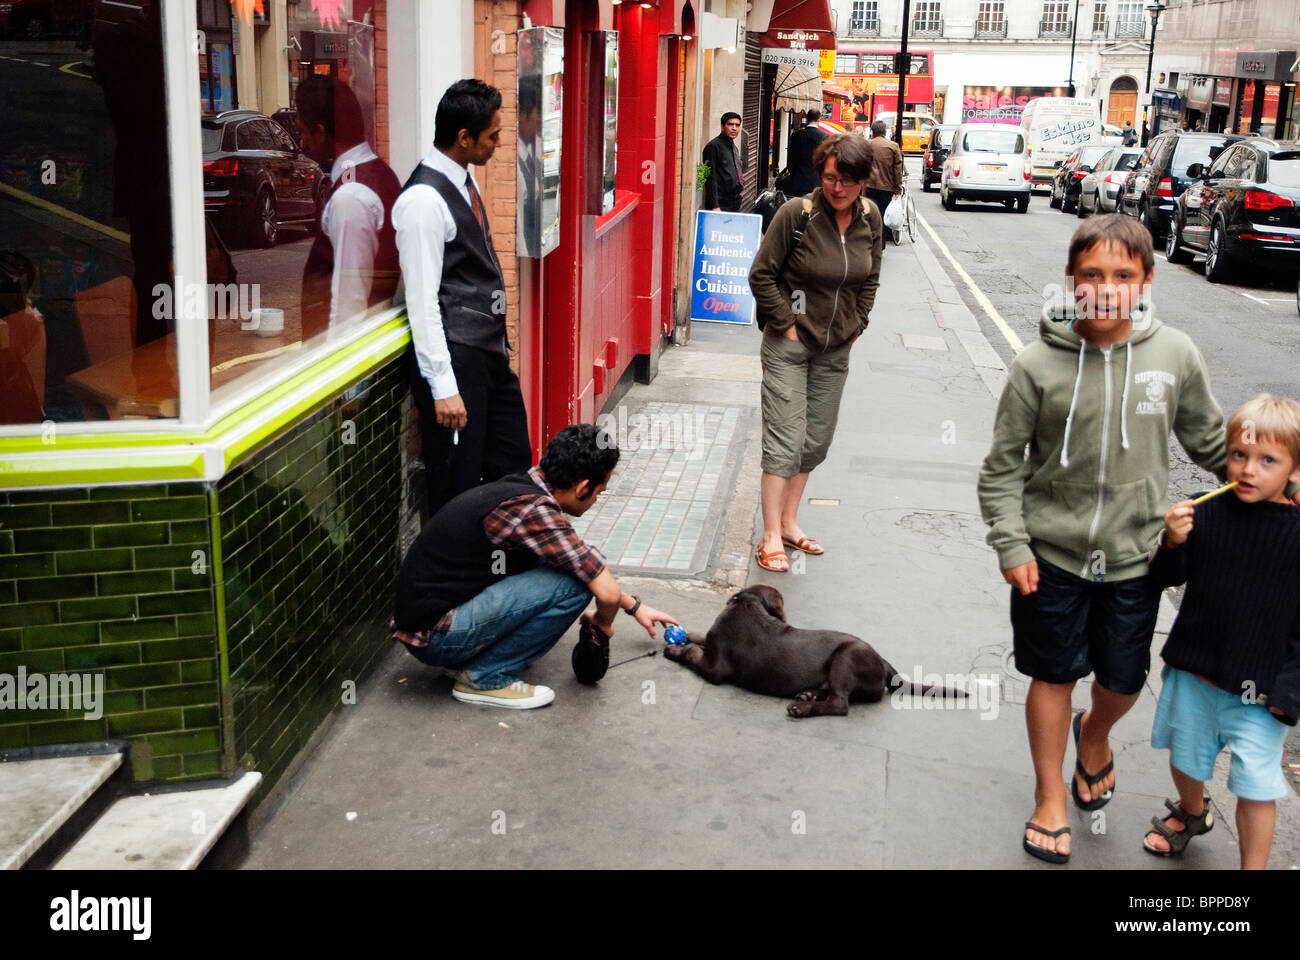 Dog being played with outside London Indian Restaurant - Stock Image